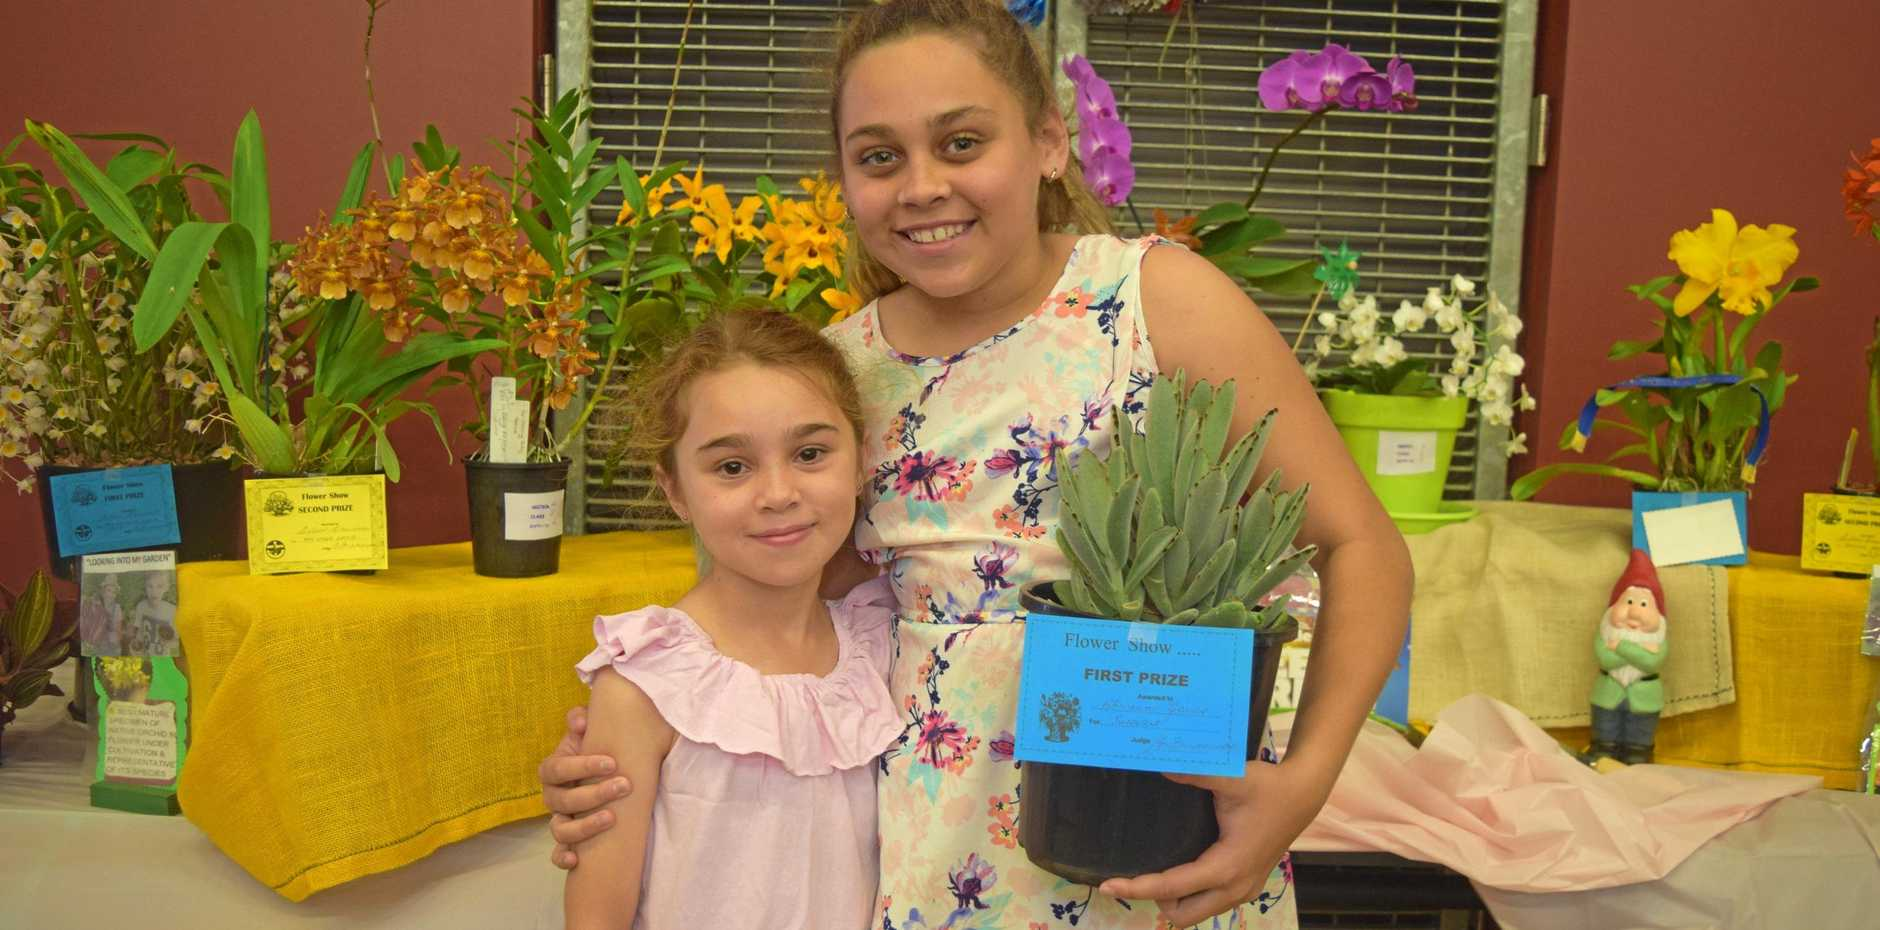 GREEN THUMB: Cousins Hailey Poid and Abriana Jones, who won first prize for her succulent at last year's Proserpine Flower Show.